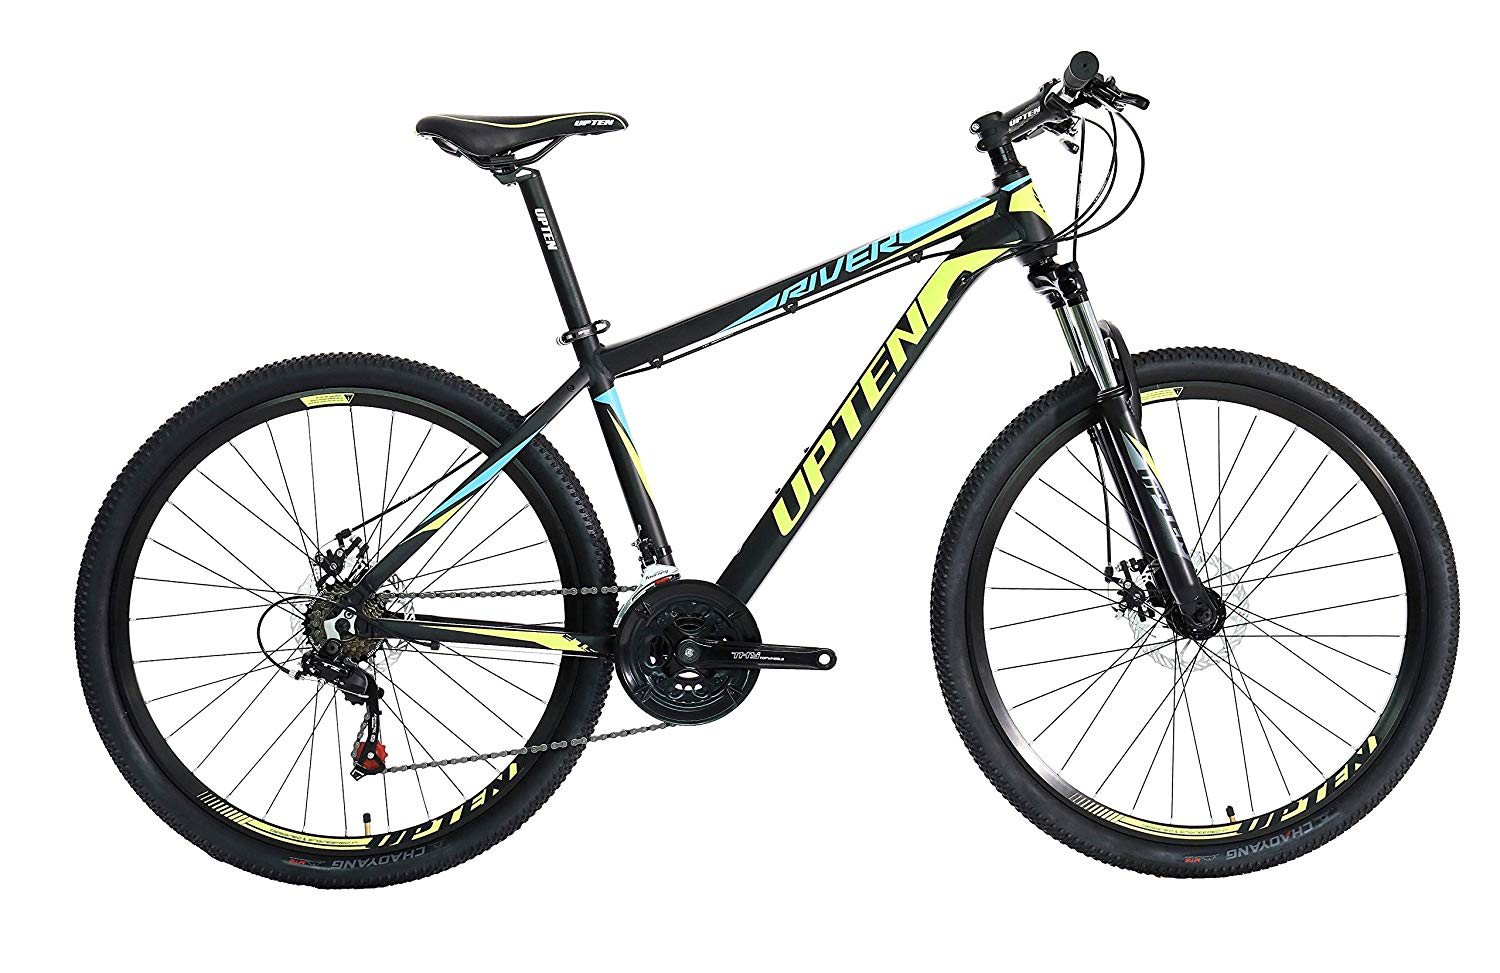 UPTEN River Mountain Bike - 27.5 Inch